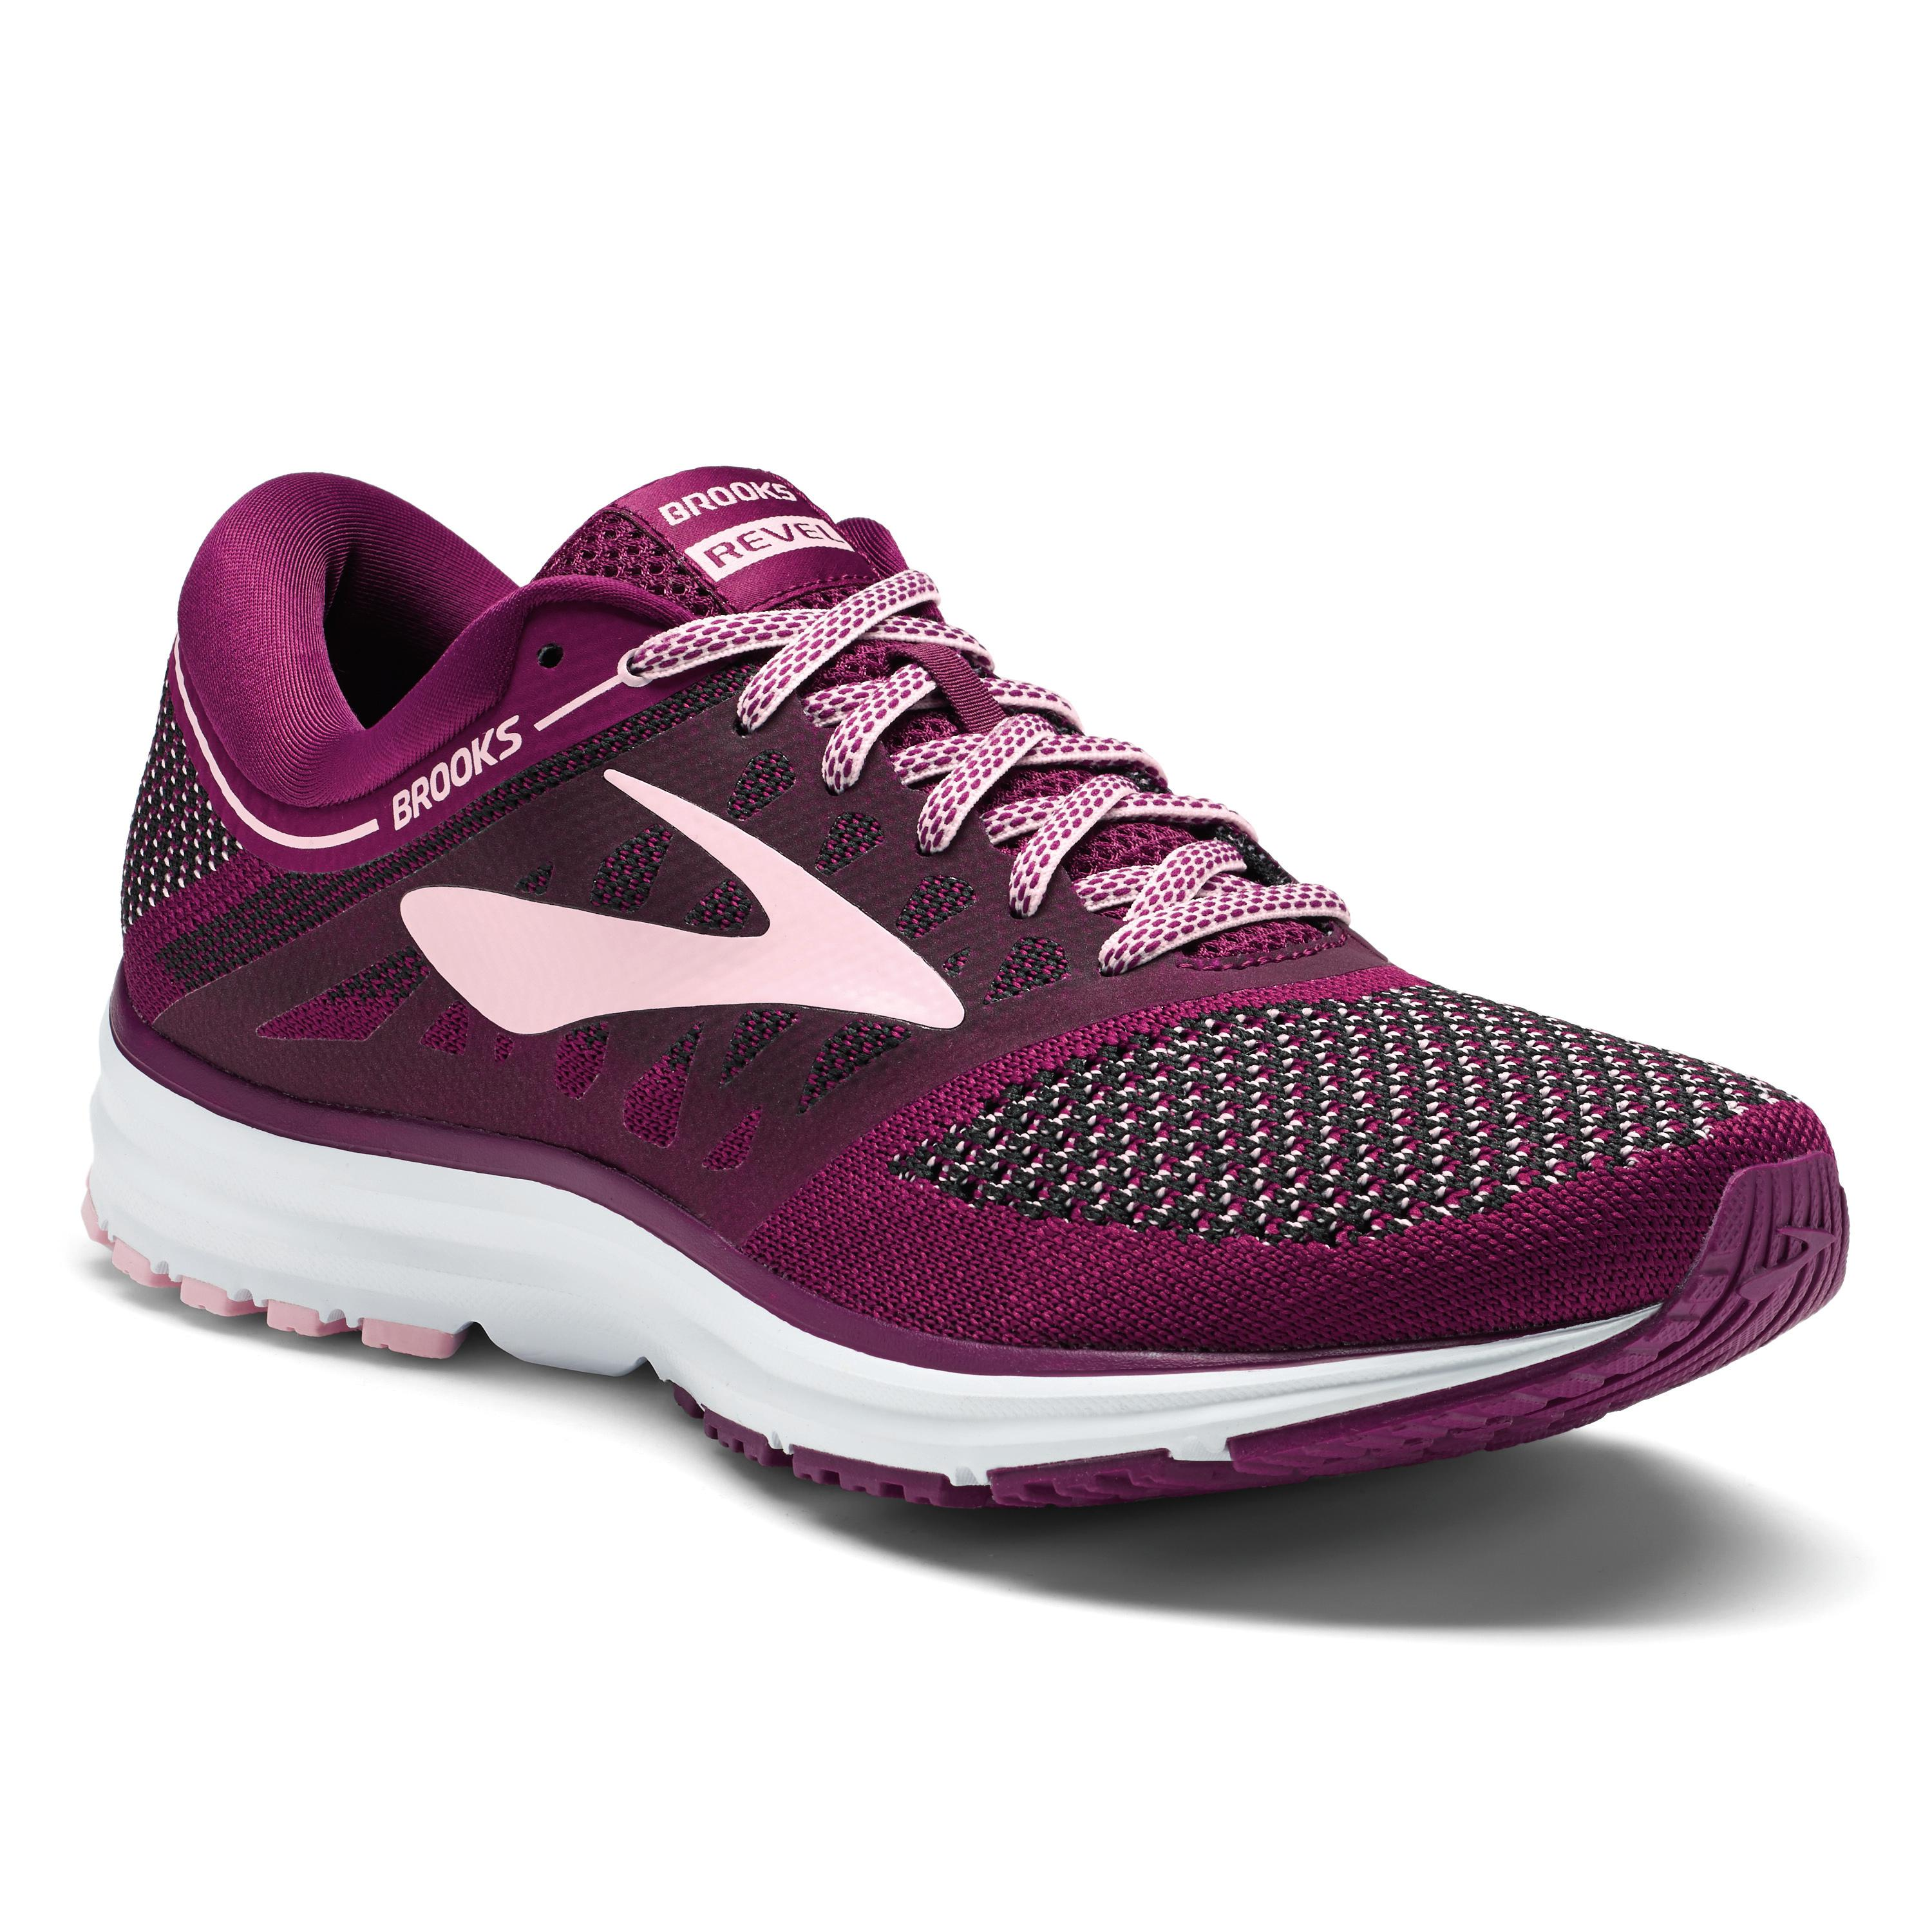 Seattleites are active! This brand new style blends street-ready looks and performance running in one sweet shoe. With its knit upper and soft cushioning, the Revel is ready for just about anything. The plum color is perf for Spring.{ } A bit bolder than an average shoe. The Revel, Brooks Running - $100. (Image: Brooks Running){ }